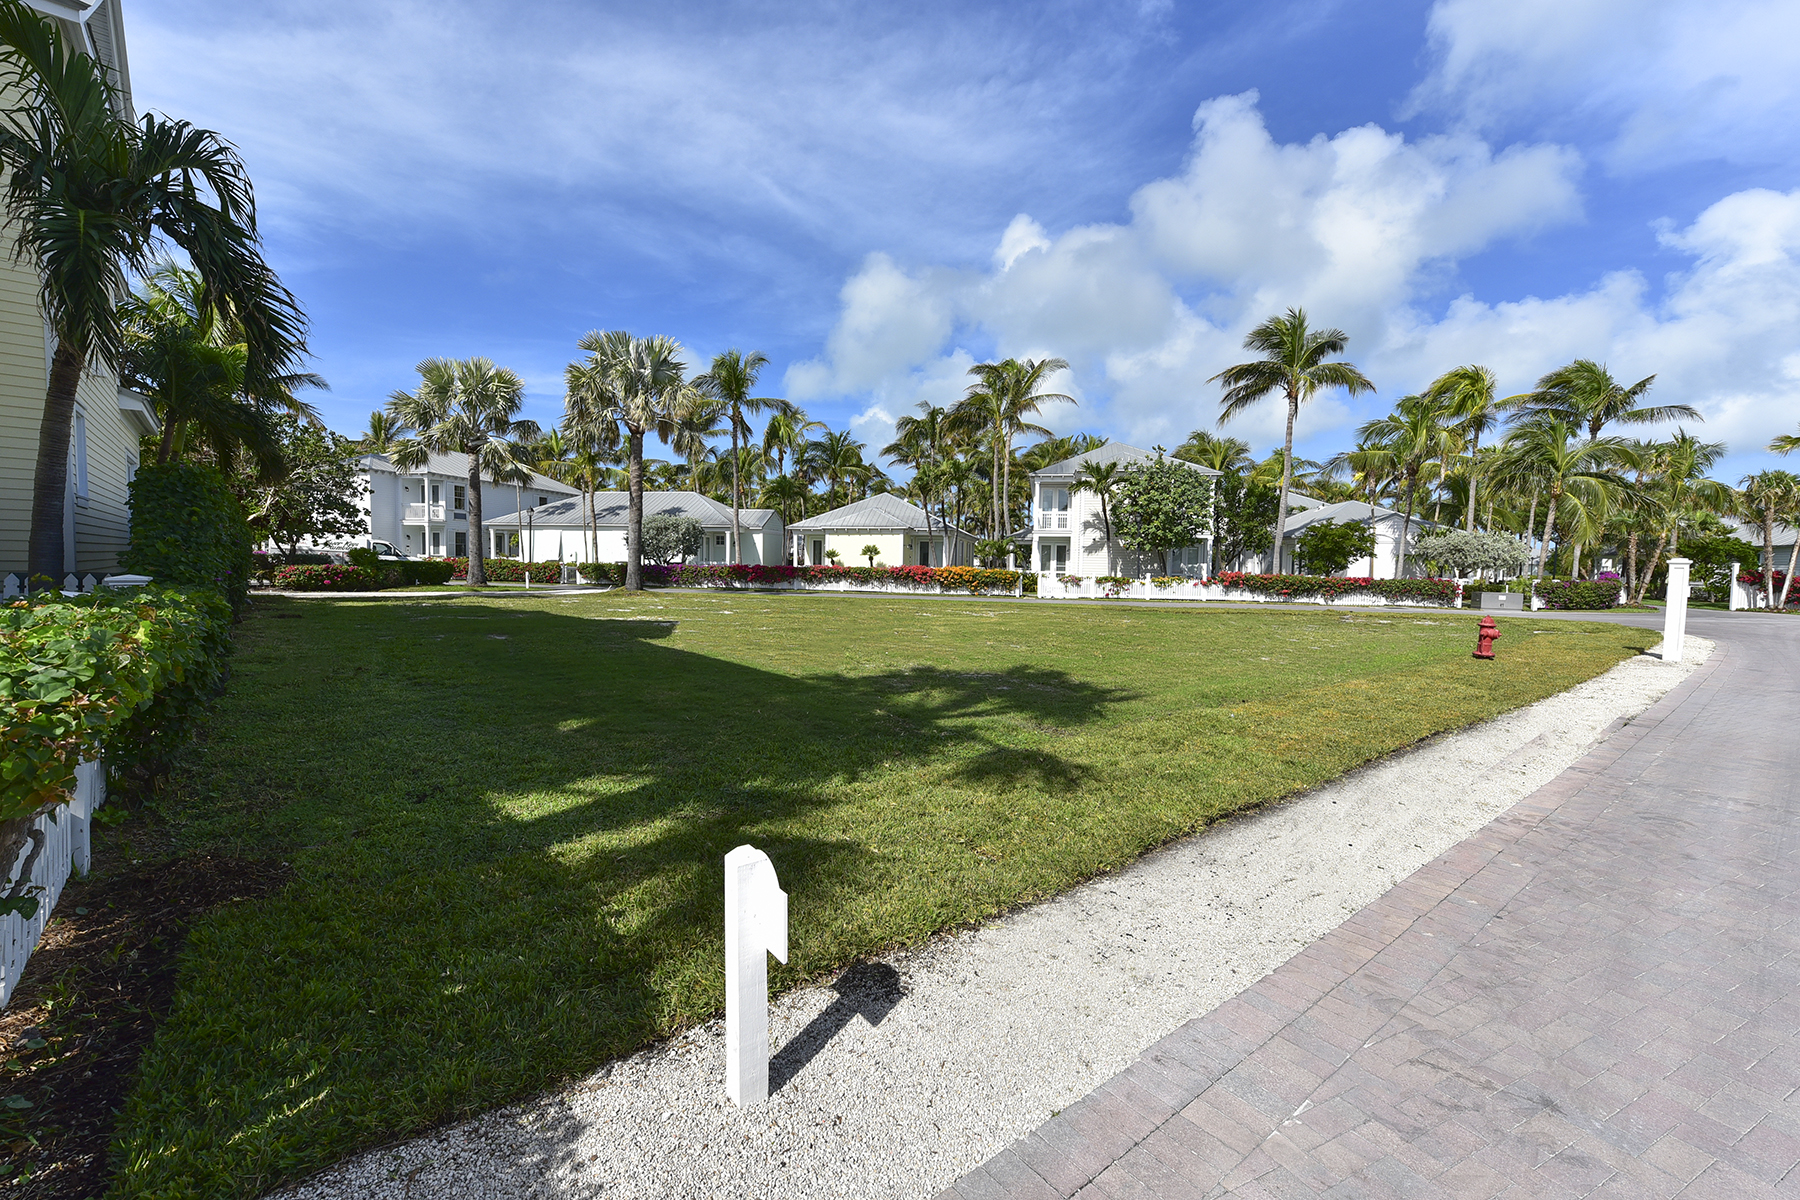 Land for Sale at Build Your Dream Home on a Private Island 60 Sunset Key Drive Key West, Florida 33040 United States